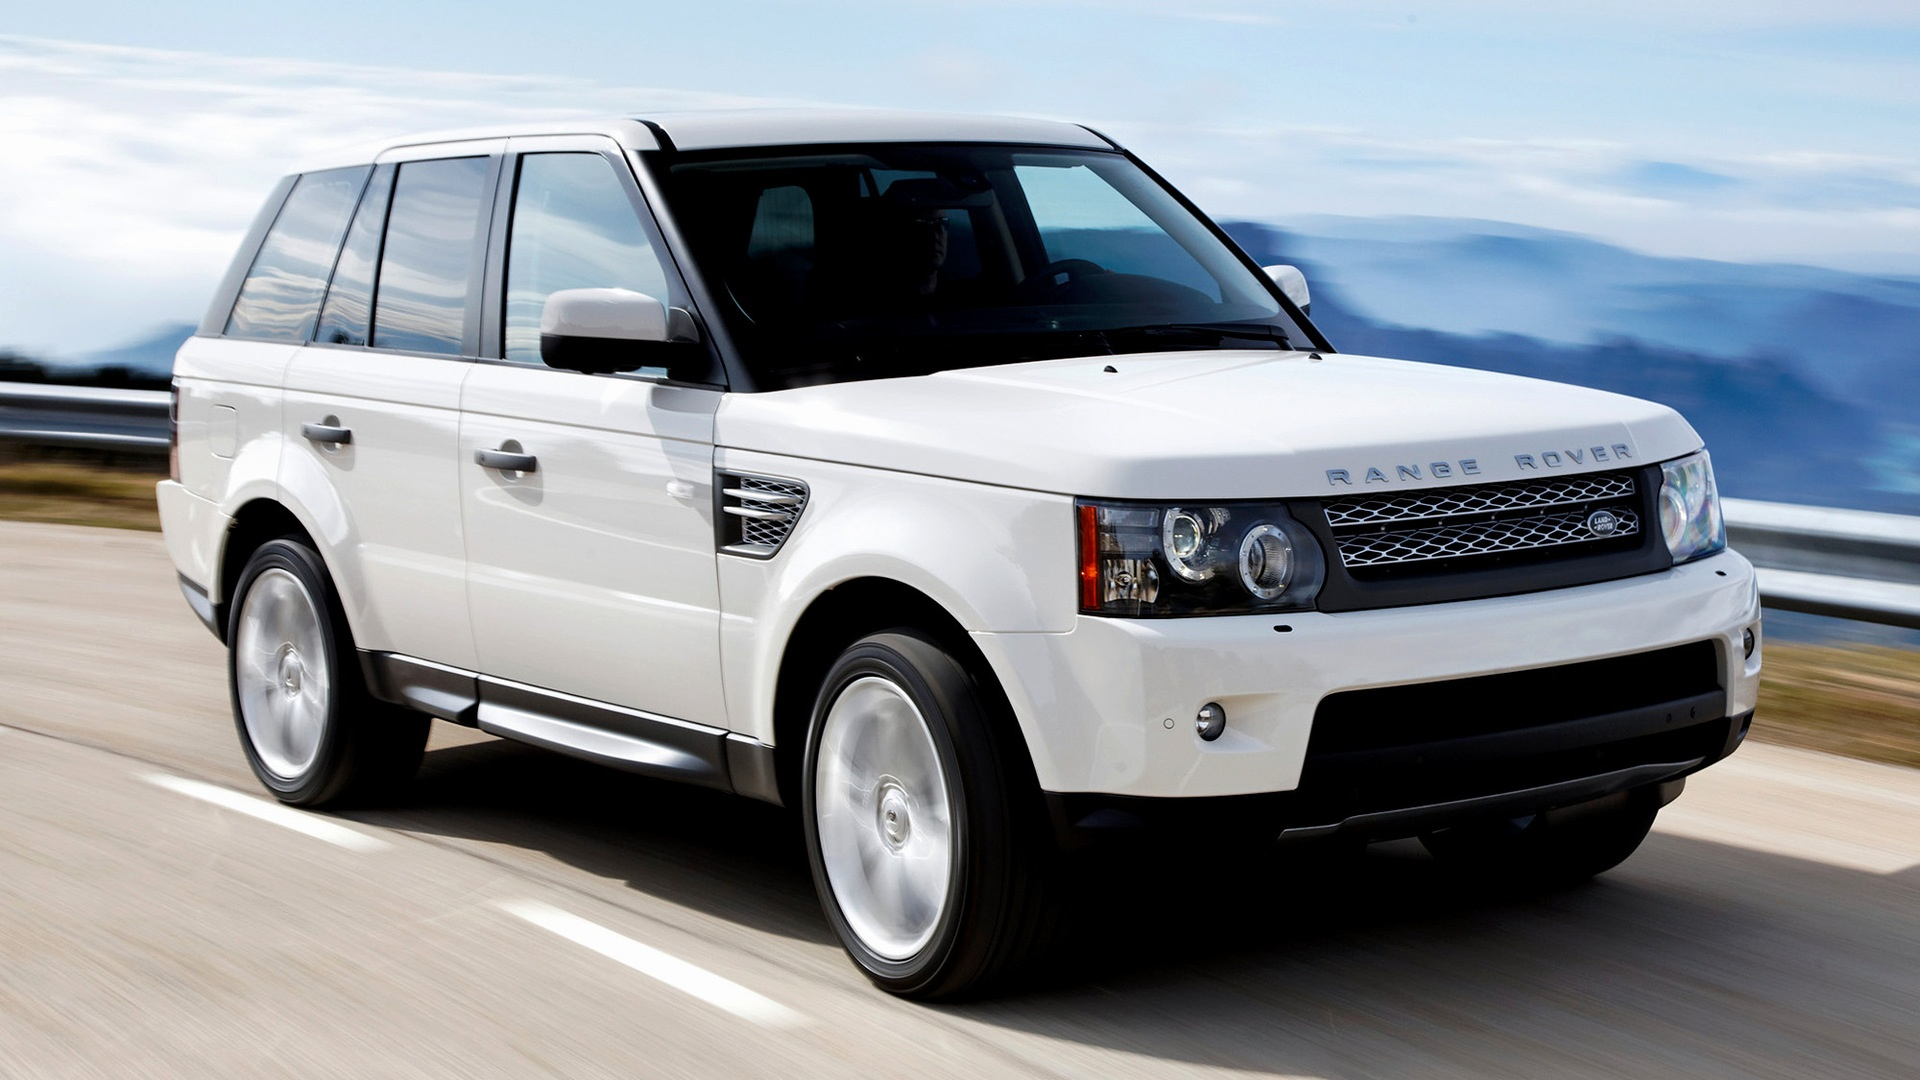 2005 2009 Range Rover Sport Factory Service And Repair